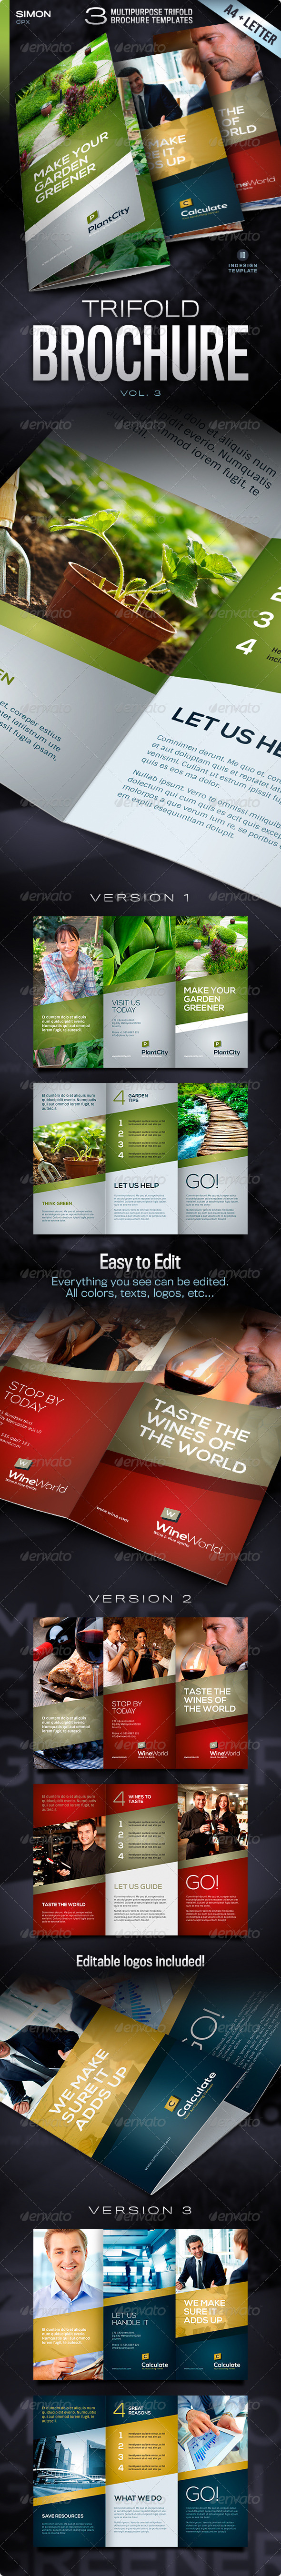 Trifold Brochure Vol. 3 - Corporate Brochures